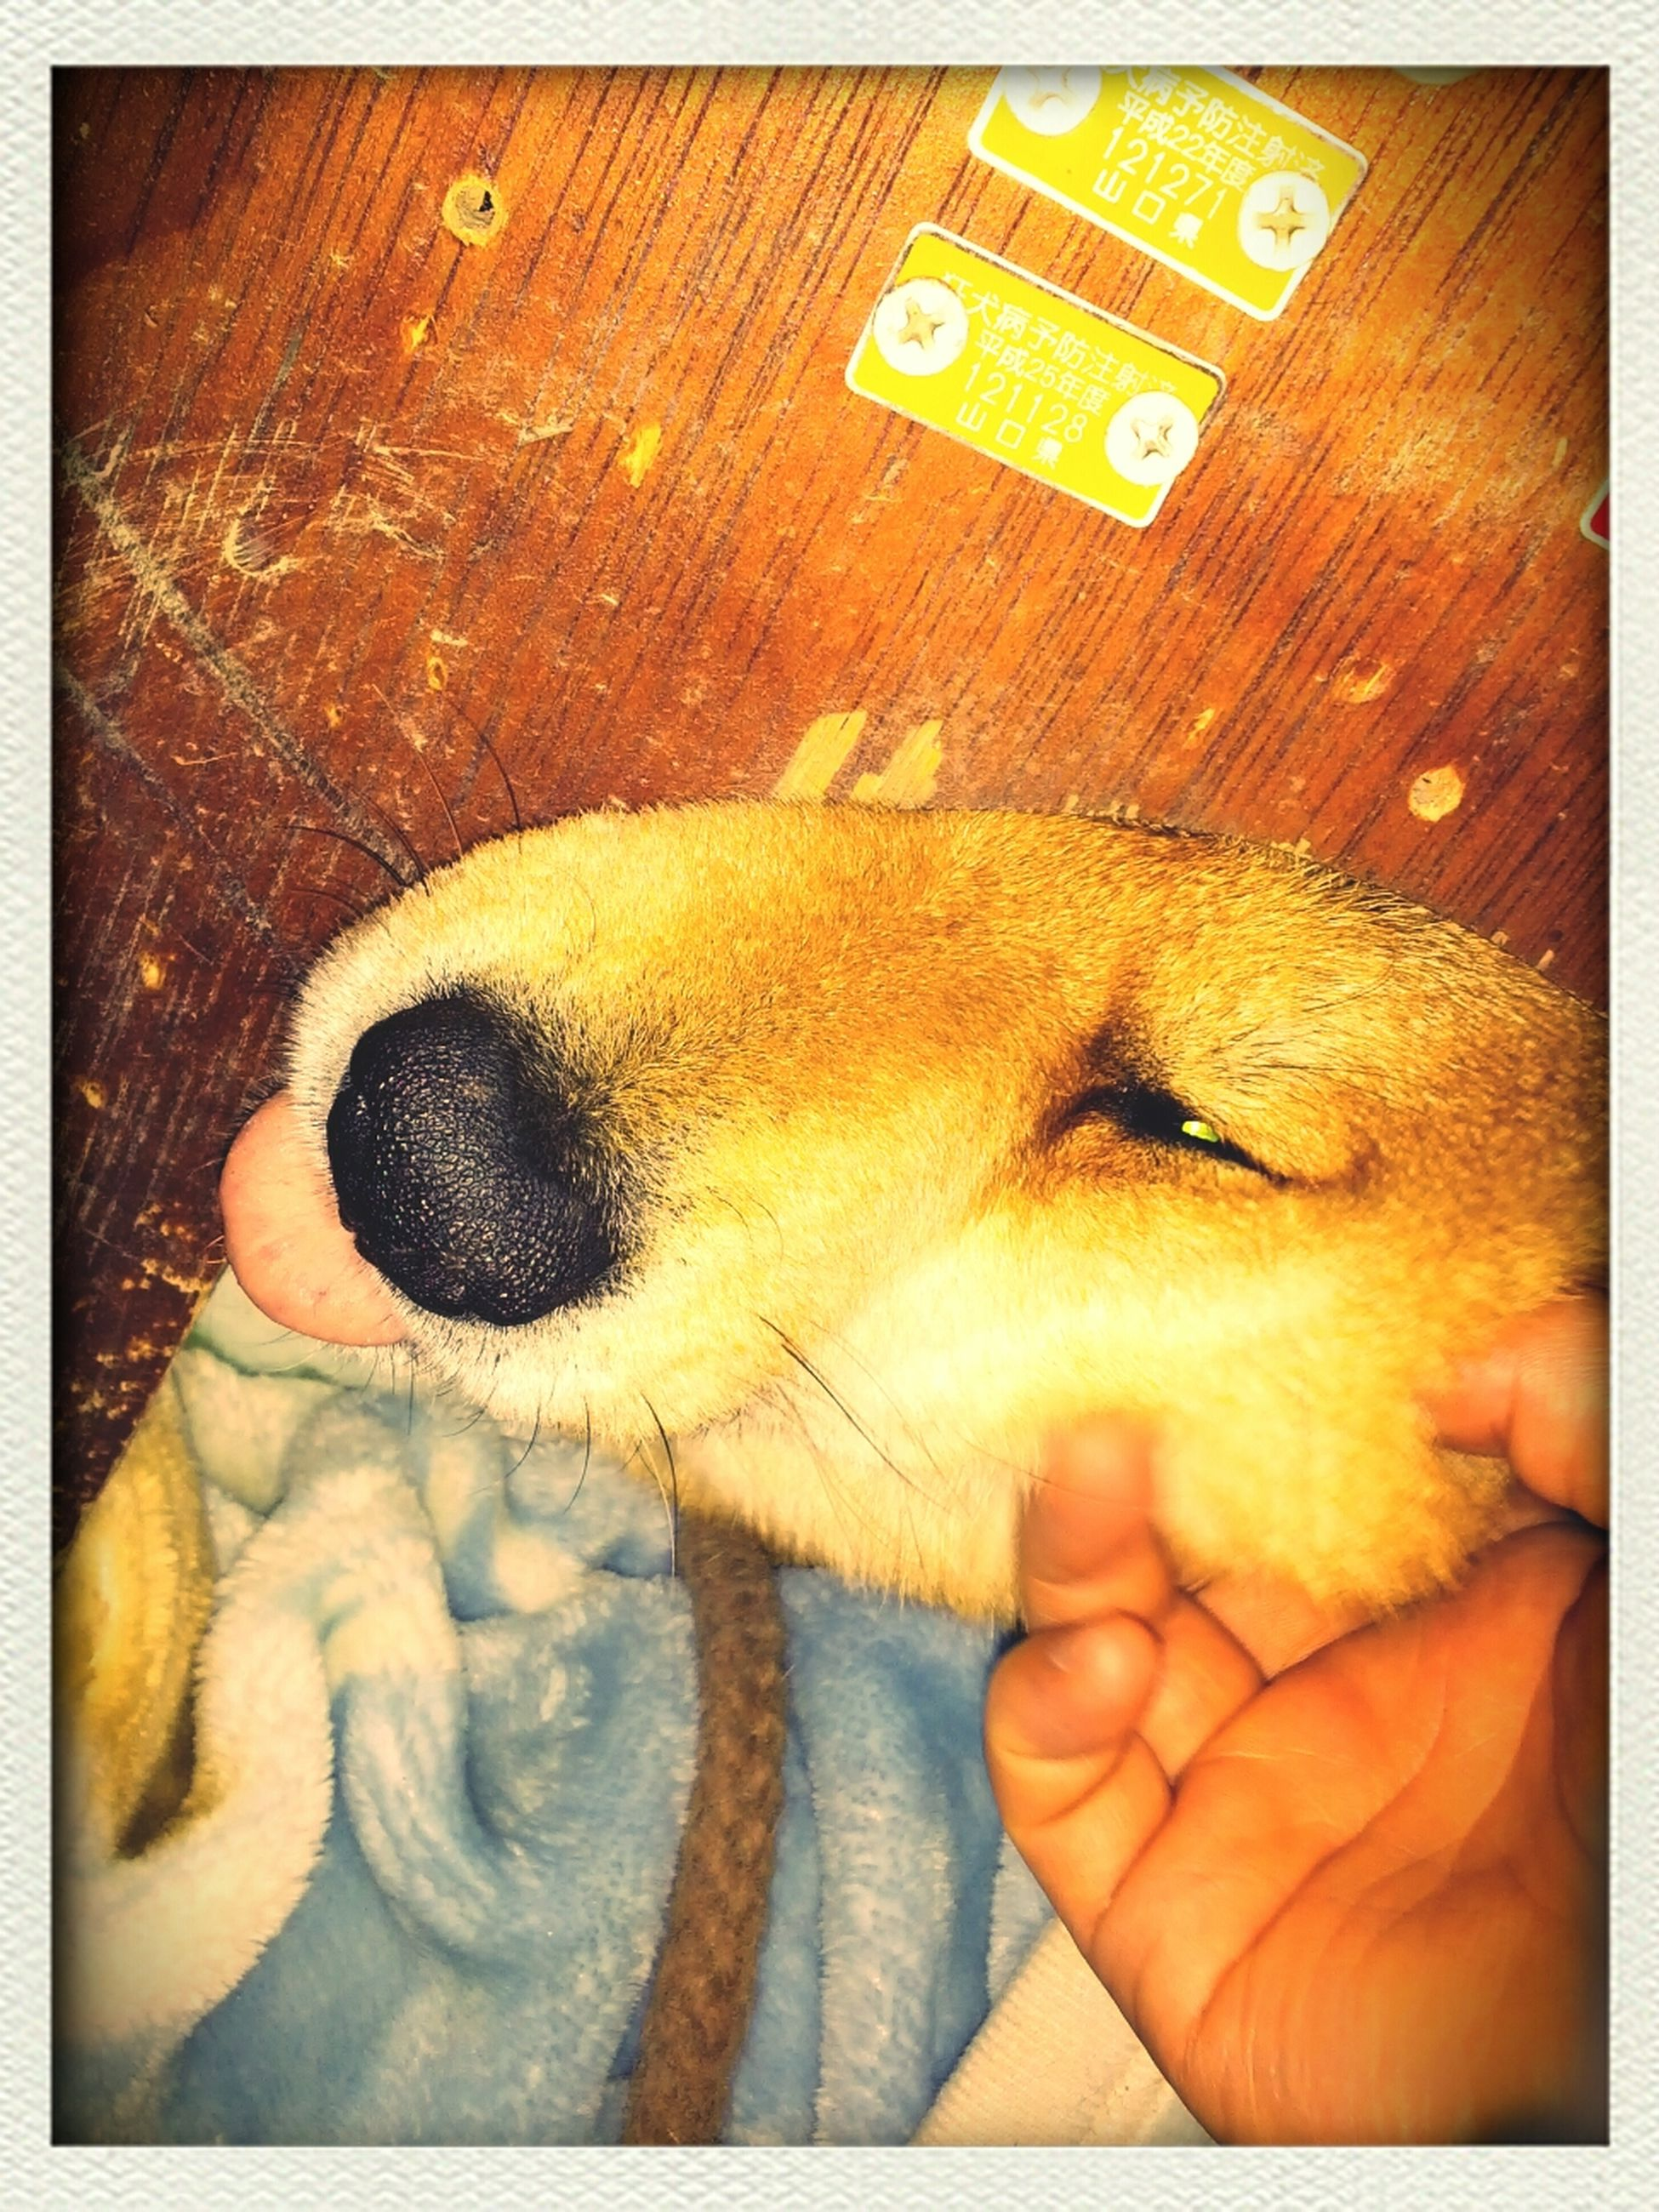 transfer print, auto post production filter, indoors, pets, person, holding, animal themes, dog, one animal, high angle view, domestic animals, close-up, part of, mammal, lifestyles, human finger, sleeping